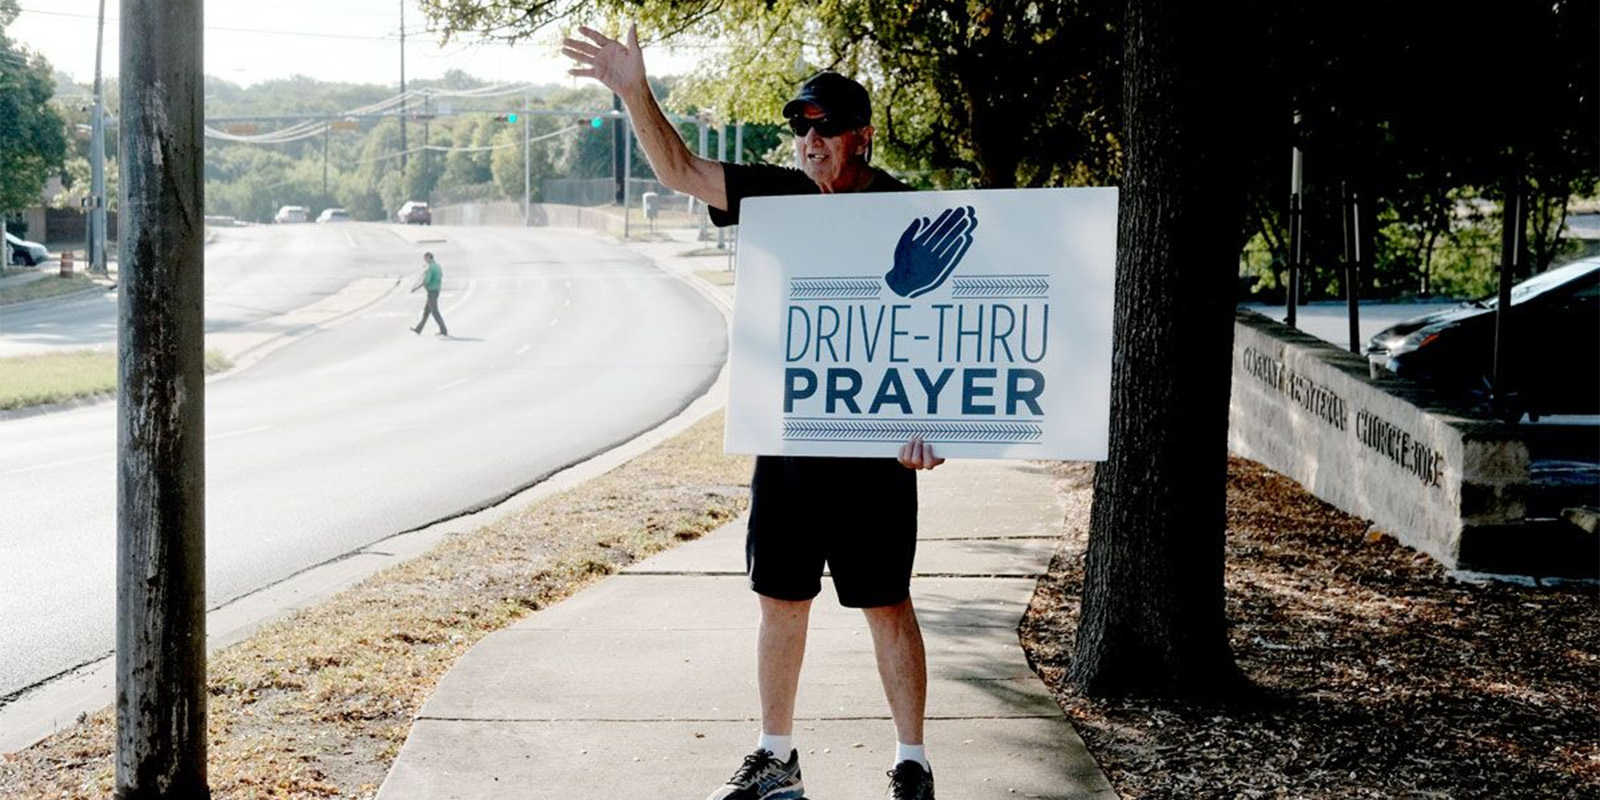 drive-thru prayer in Austin, TX